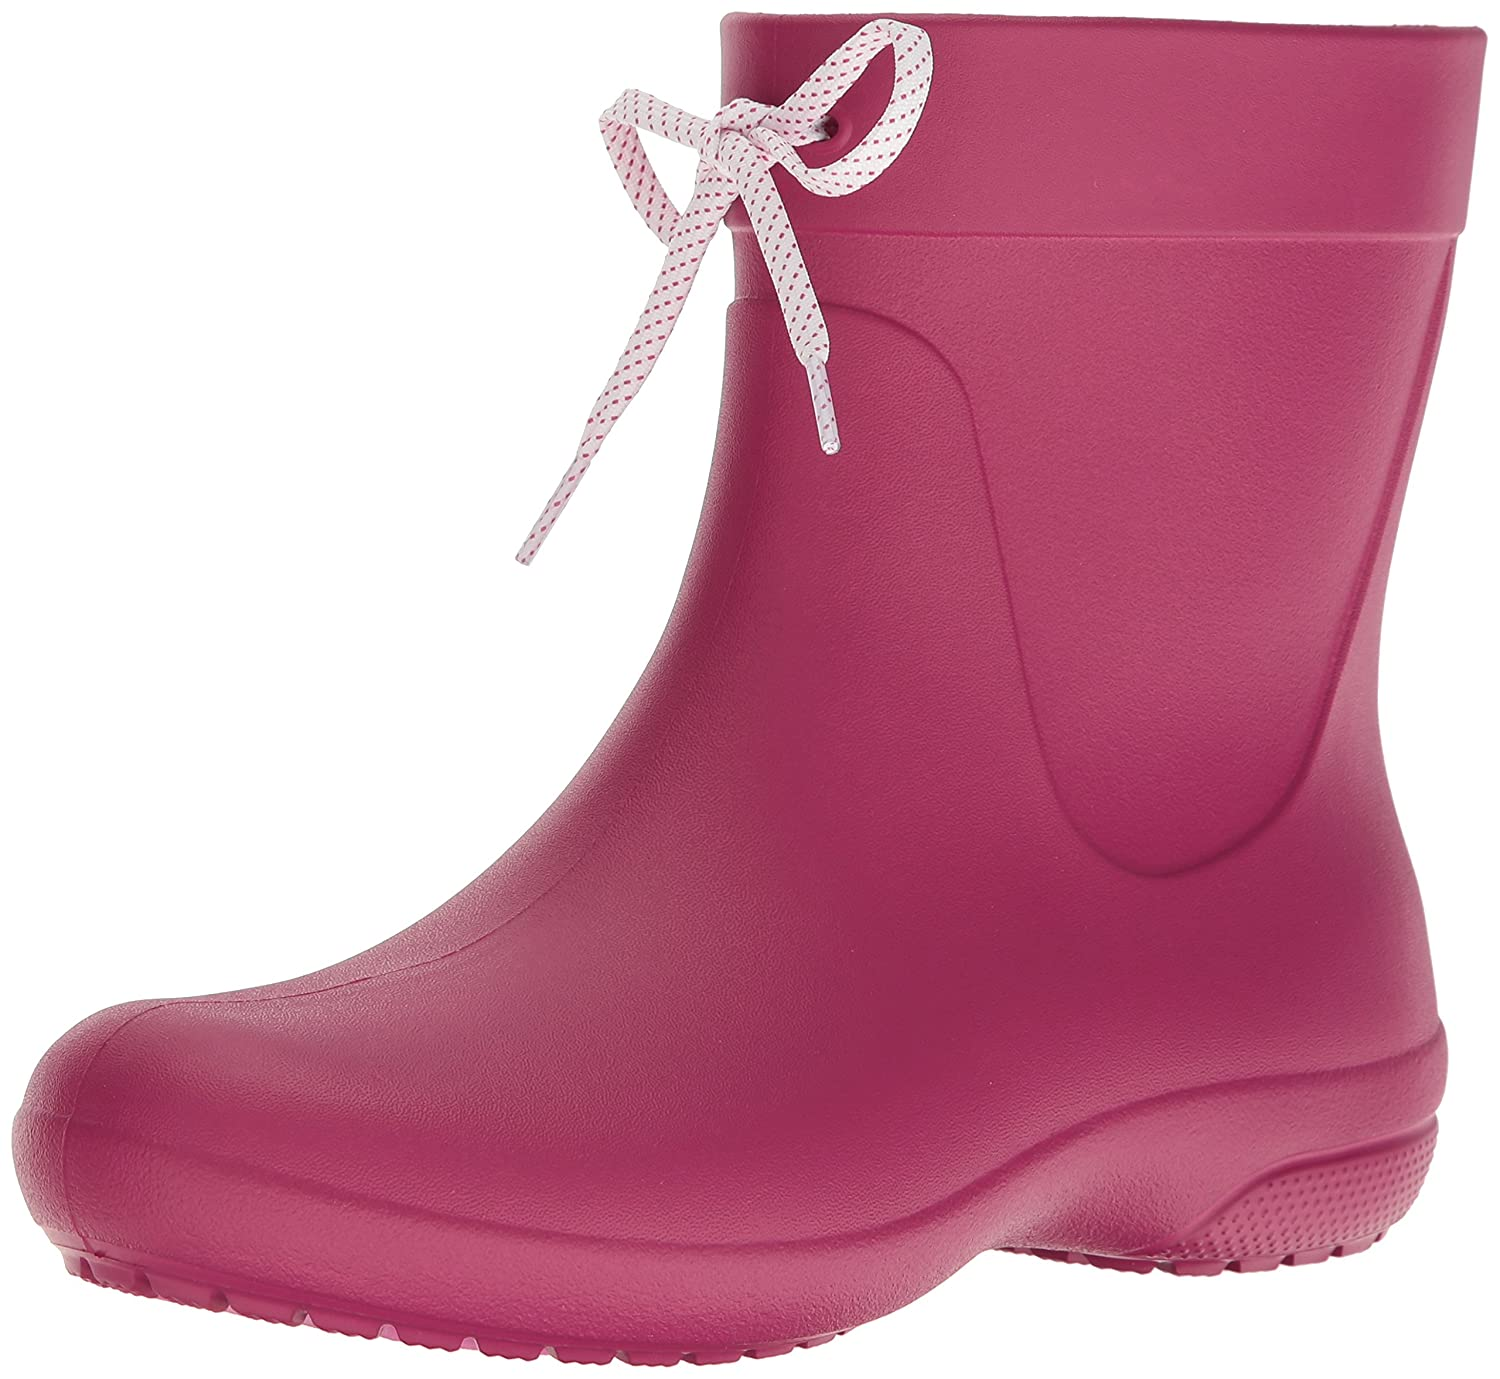 Crocs Freesail Rain Shorty Rain Boots, Bottes Freesail Femme 19995 Rose (Berry) 3a33bfb - conorscully.space